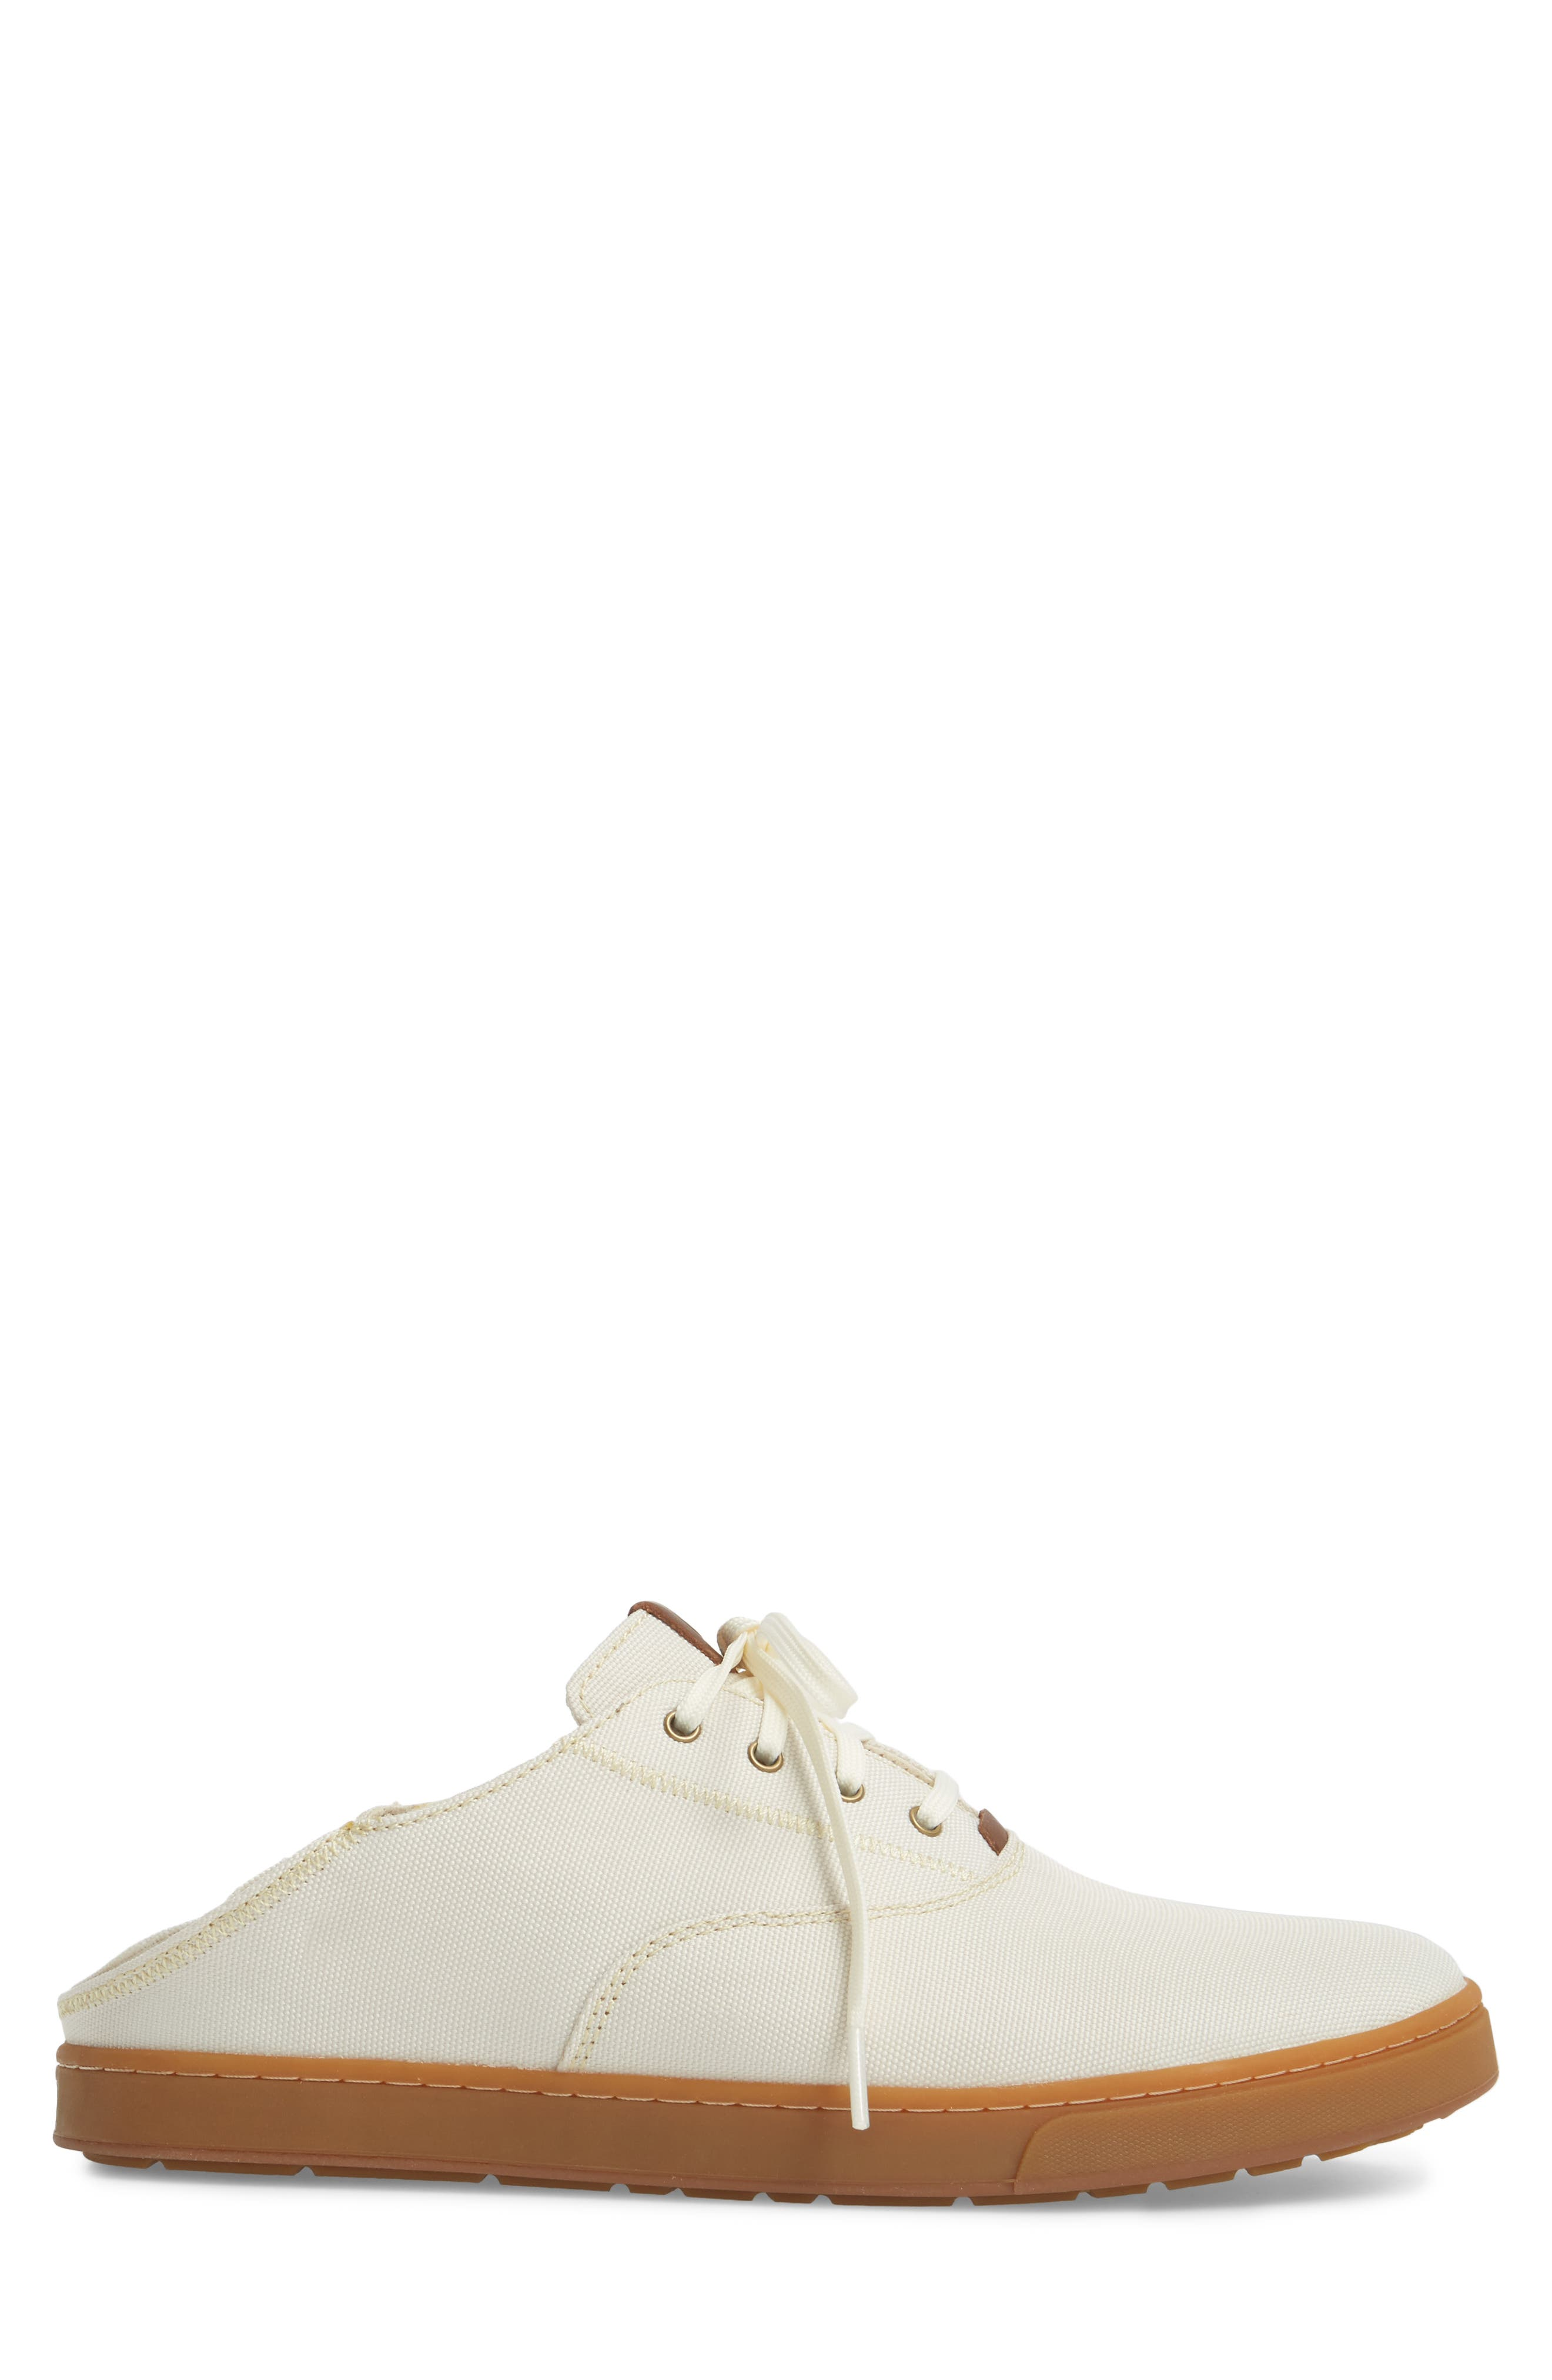 Kahu Collapsible Lace-Up Sneaker,                             Alternate thumbnail 4, color,                             OFF WHITE/ TOFFEE